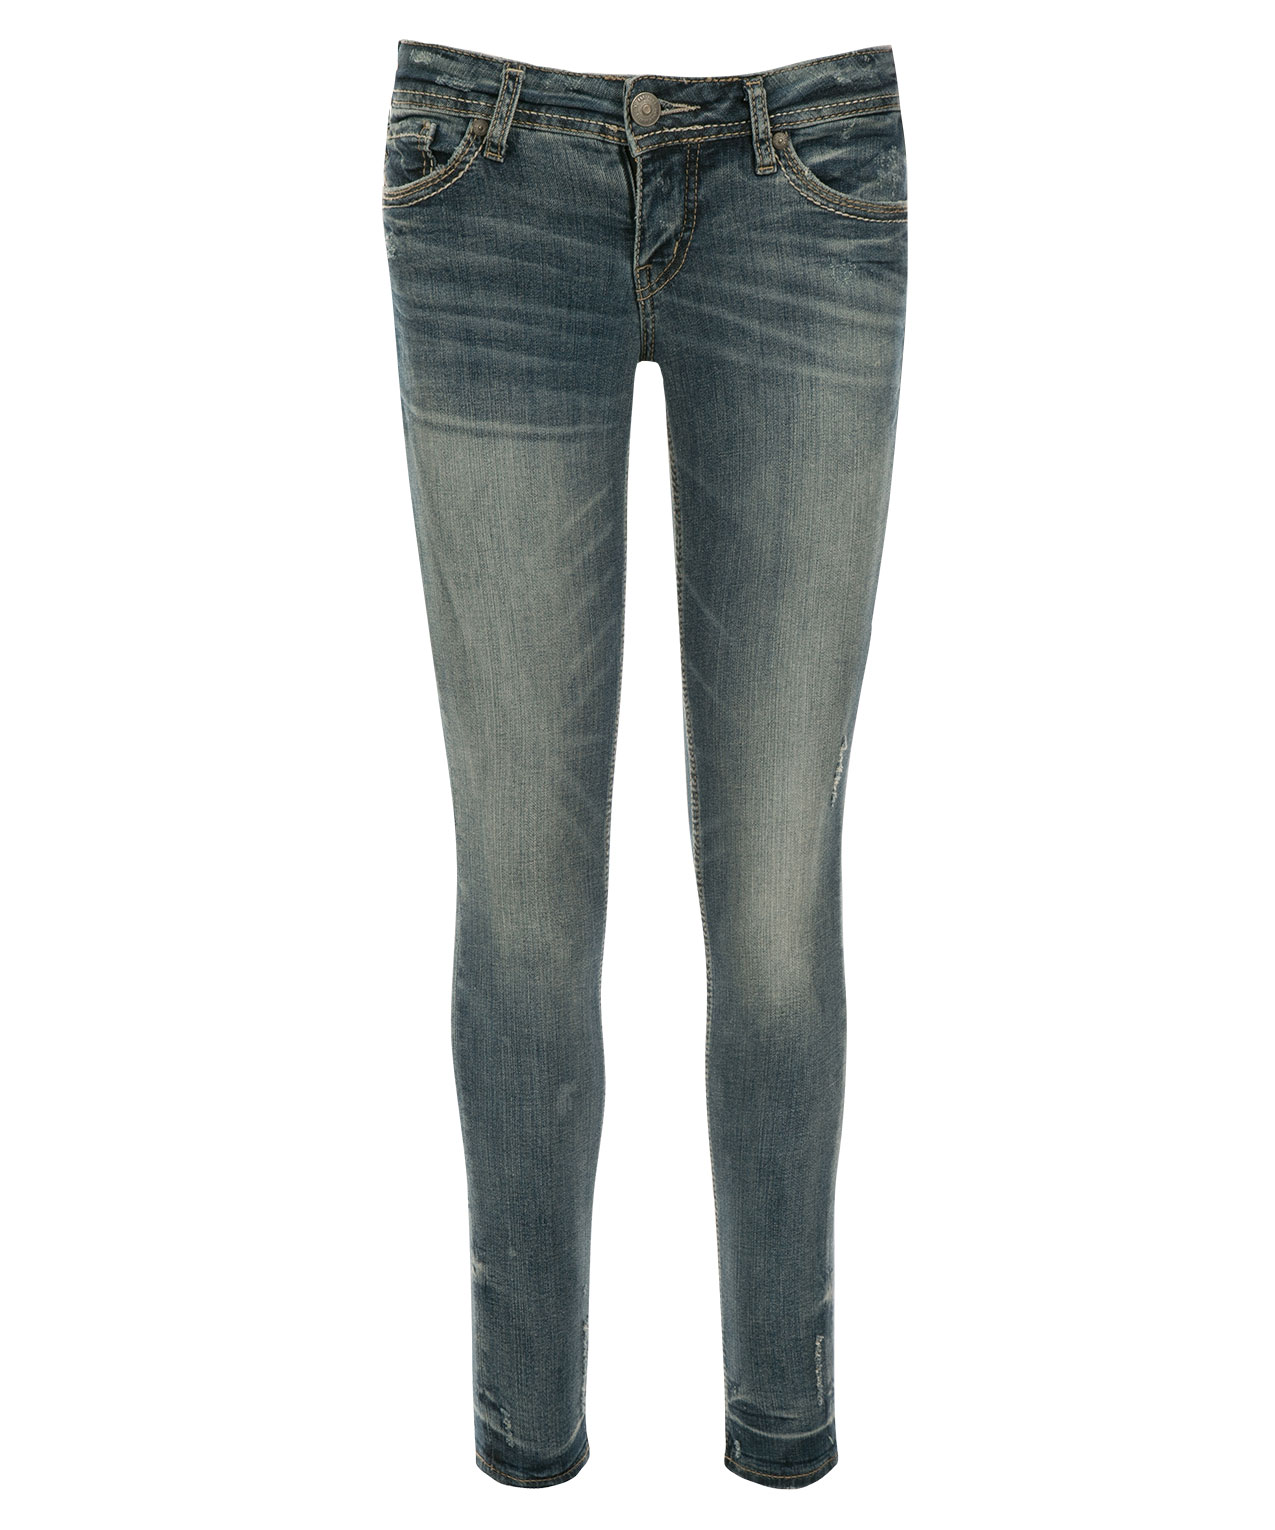 DENIM - Denim trousers Silver Jeans Co Buy Cheap Really 84Etu8